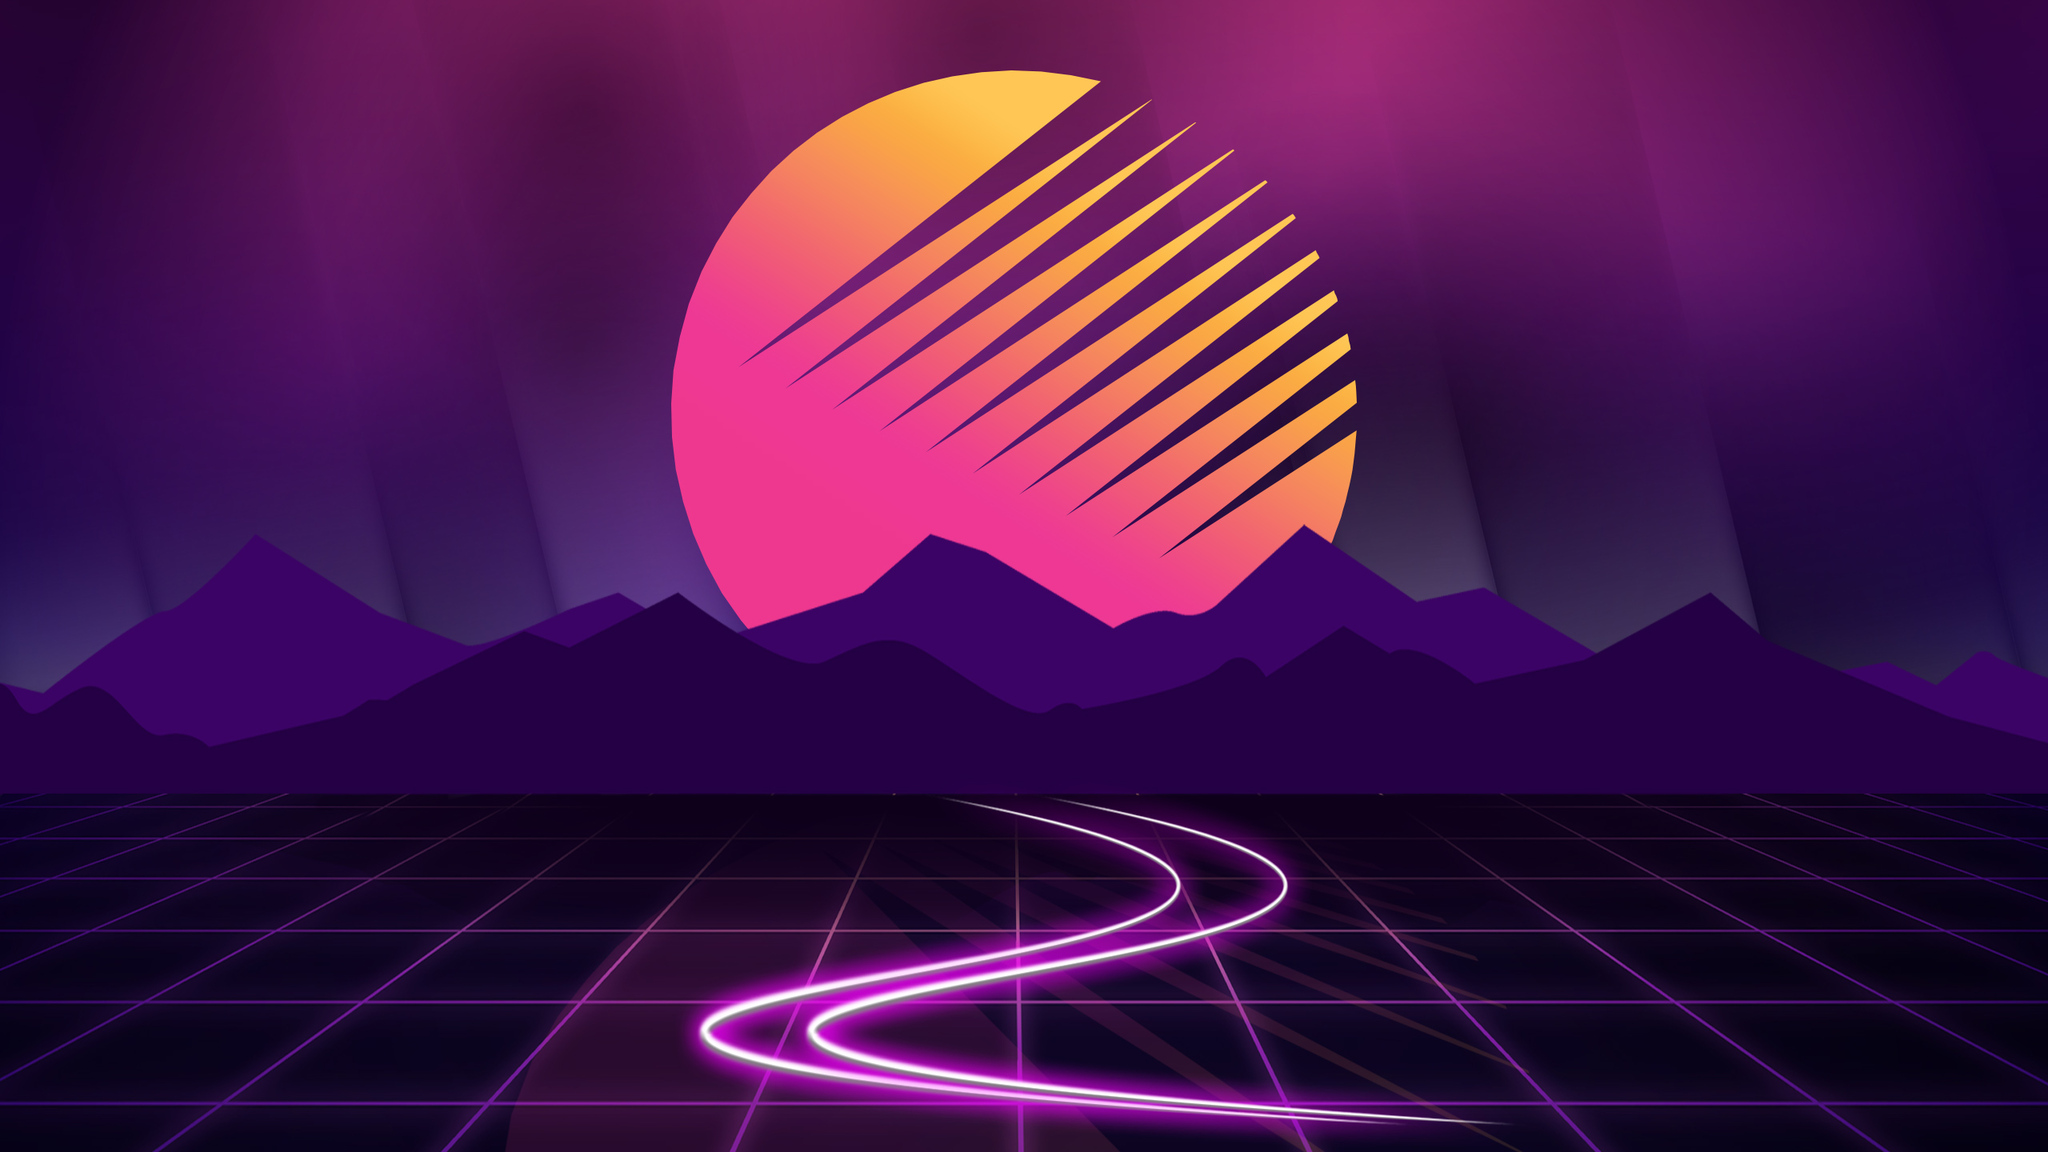 2048x1152 Outrun 2048x1152 Resolution Hd 4k Wallpapers Images Backgrounds Photos And Pictures